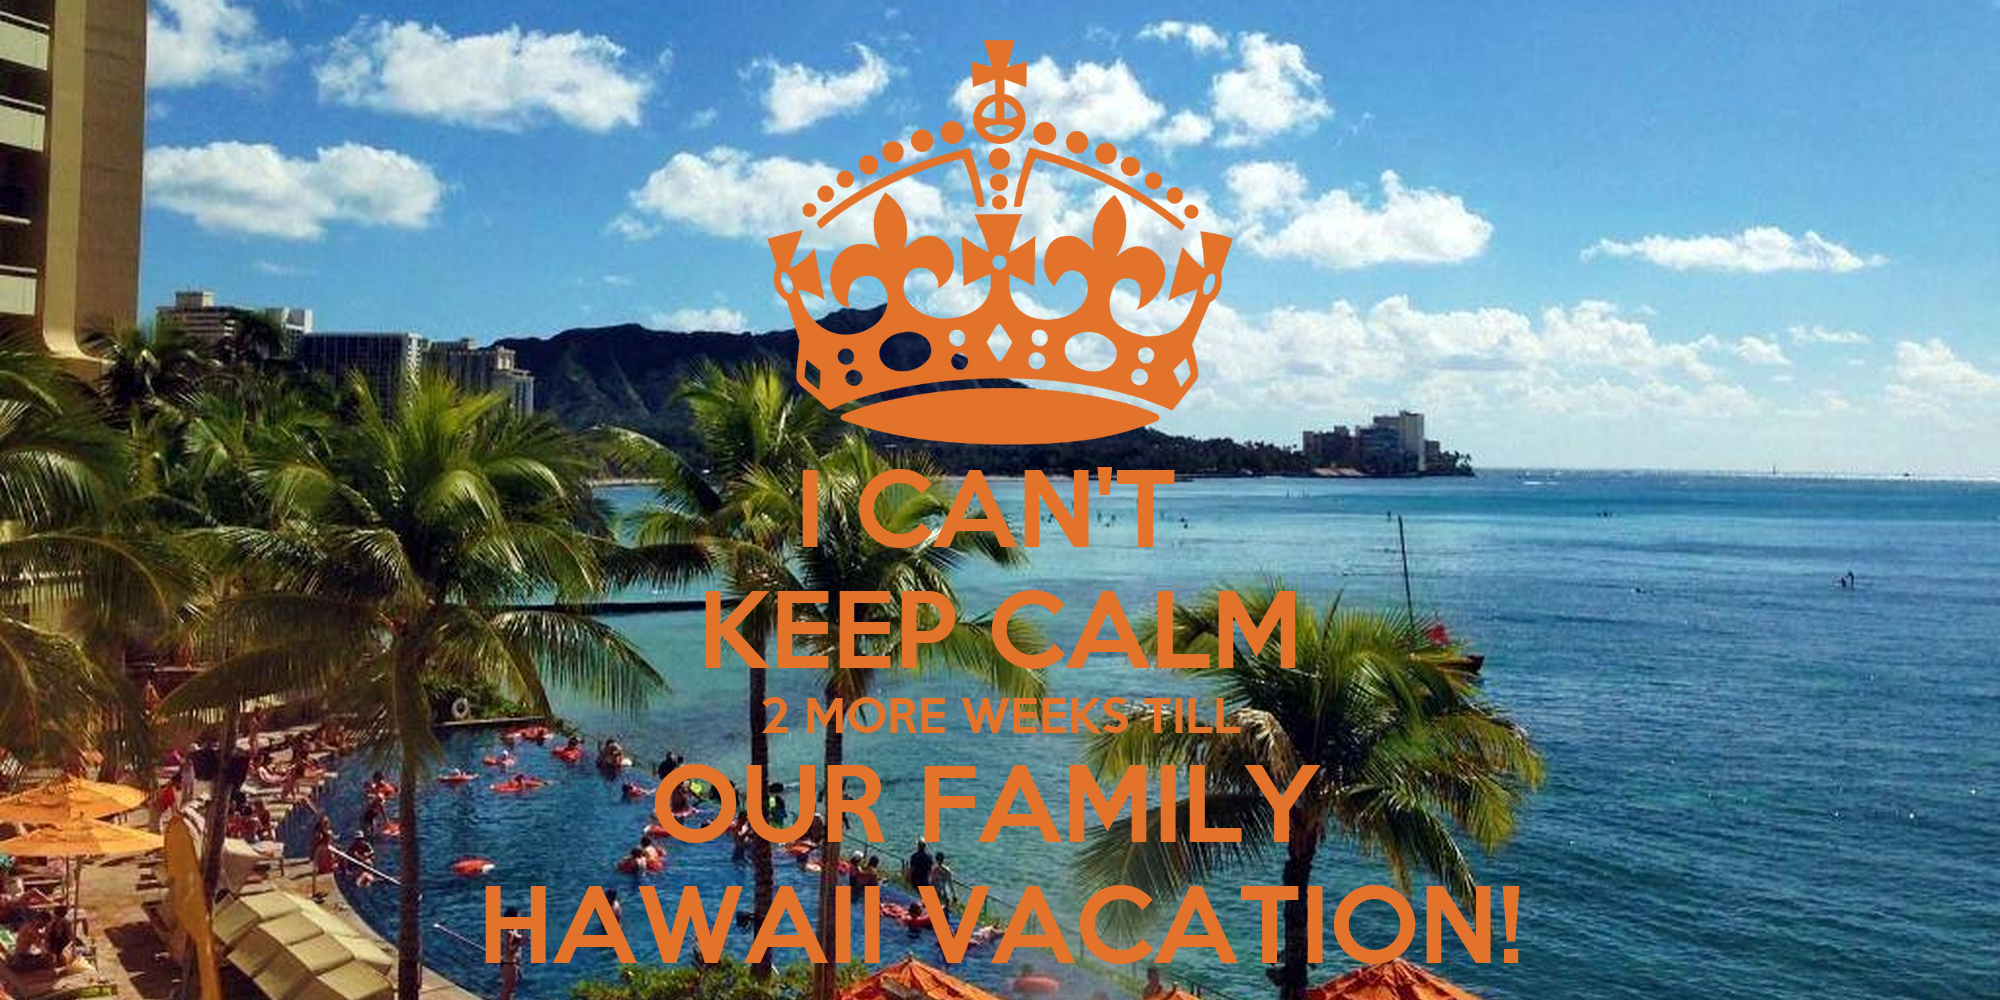 I CAN'T KEEP CALM 2 MORE WEEKS TILL OUR FAMILY HAWAII